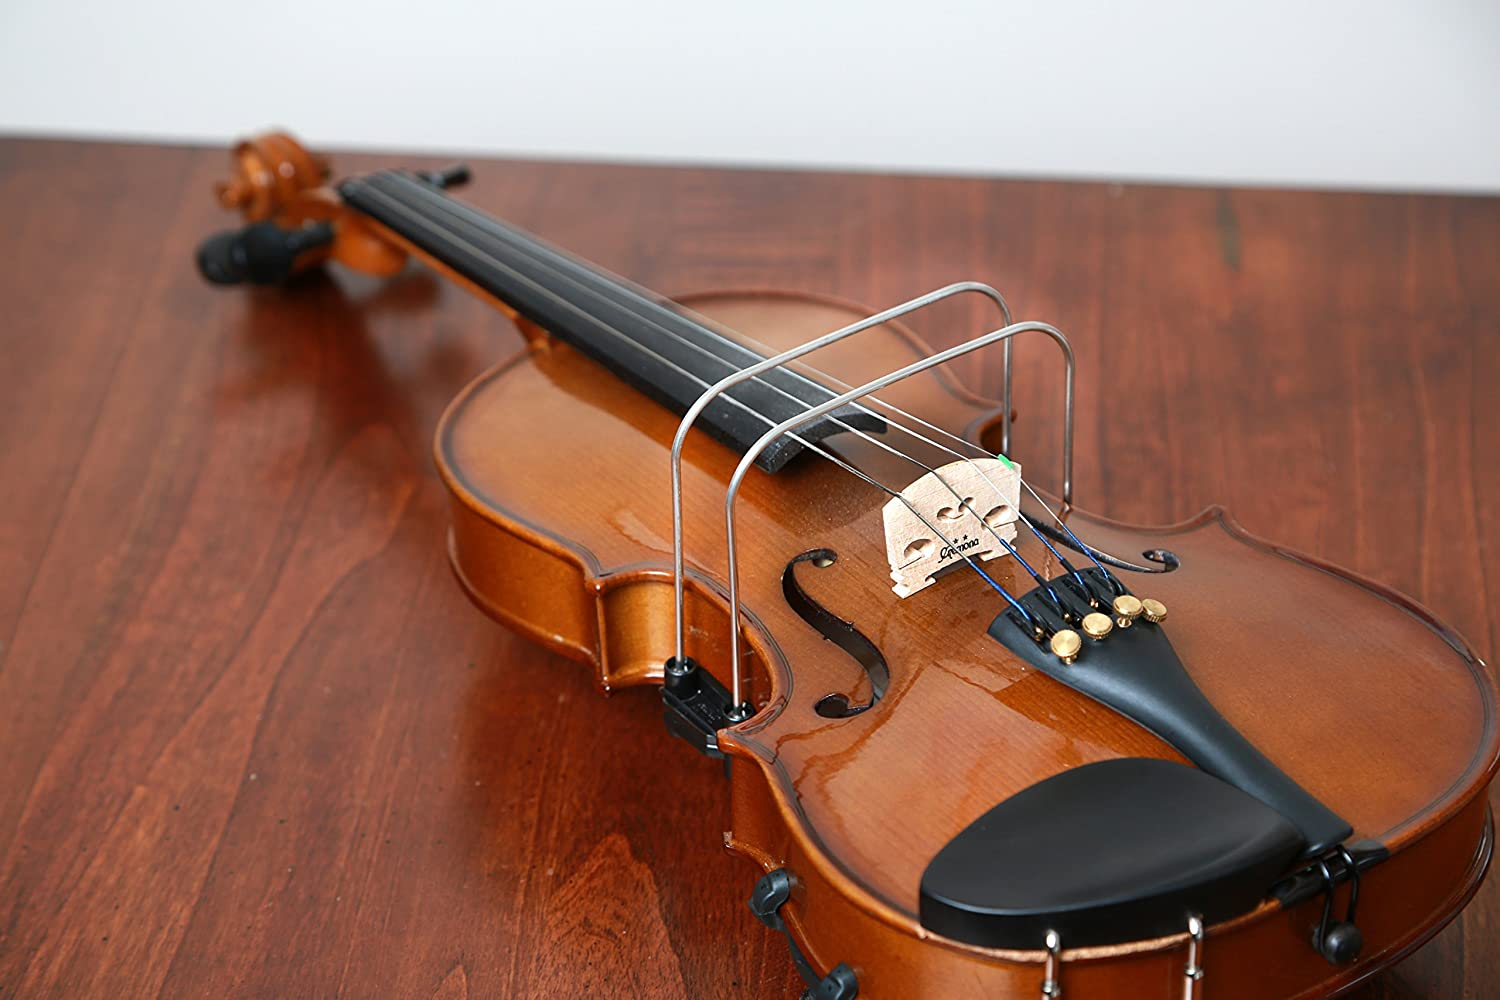 Original Bow-Right for 1 4 - Size A surprise price is realized Medium Teaches Violin 2 Max 45% OFF